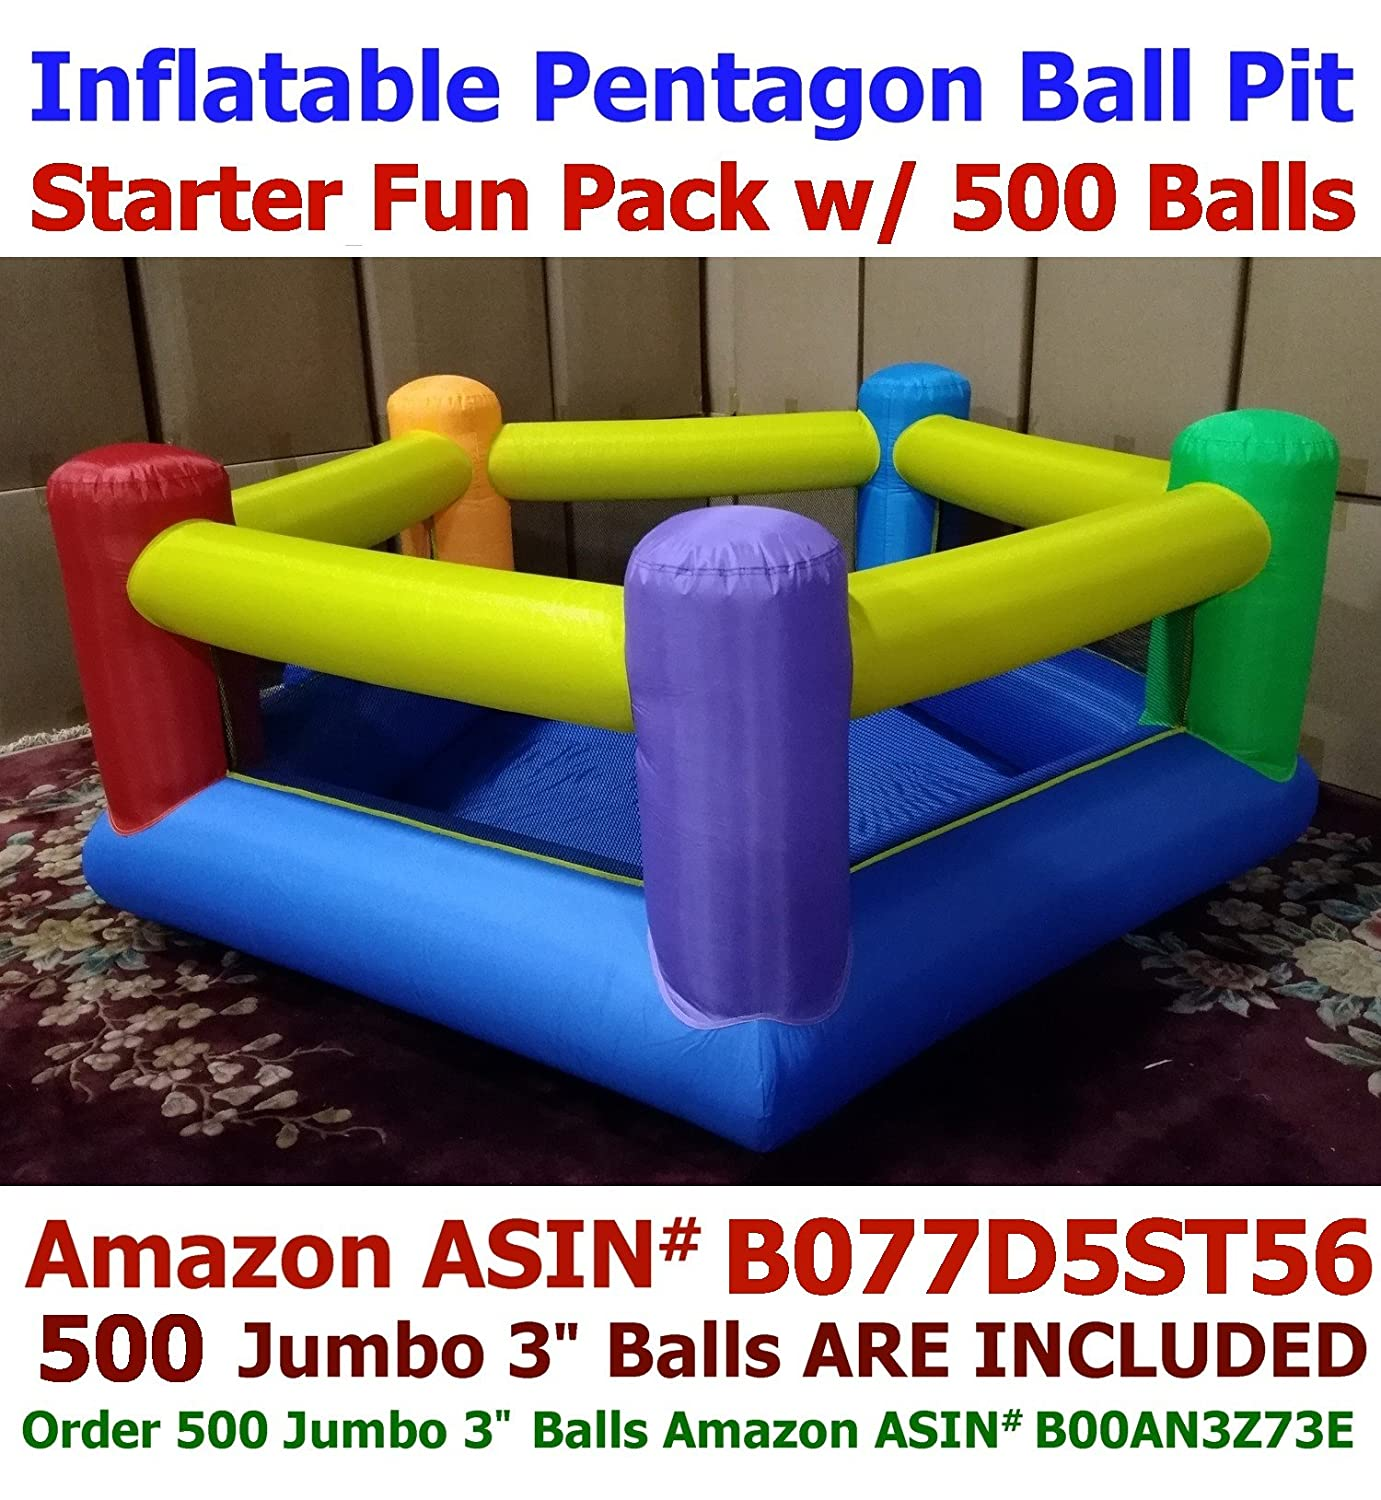 BALLS INCLUDED - My Bouncer Perfect Little Ball Pit Great for Indoor Use - Inflatable to 84' L x 72' W x 40' H w/ Blower Pump ( 1000 Jumbo 3' Balls Required, 500 Balls Included )